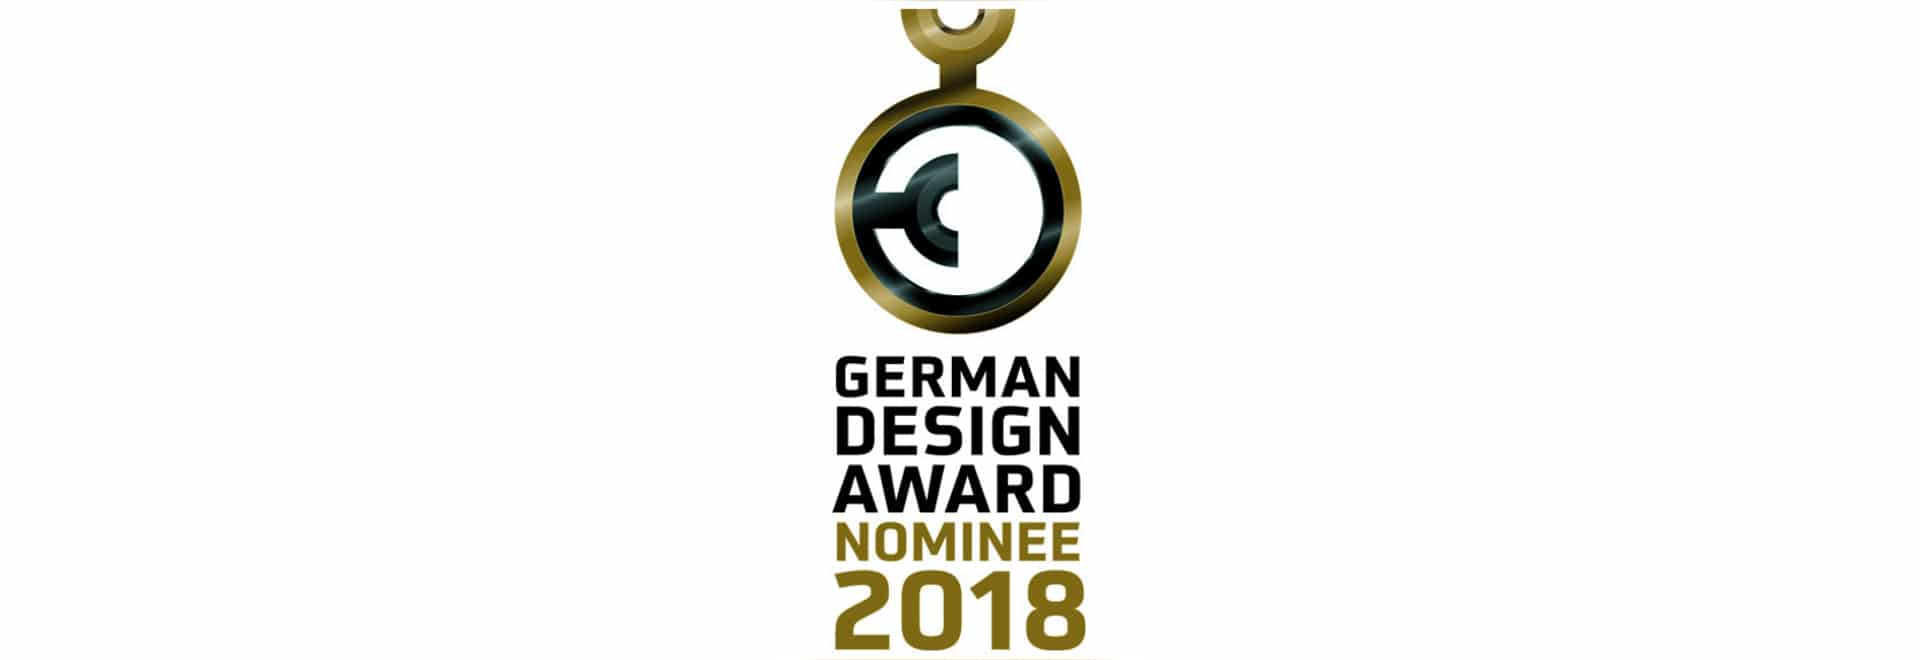 Nominierung zum German Design Award 2018